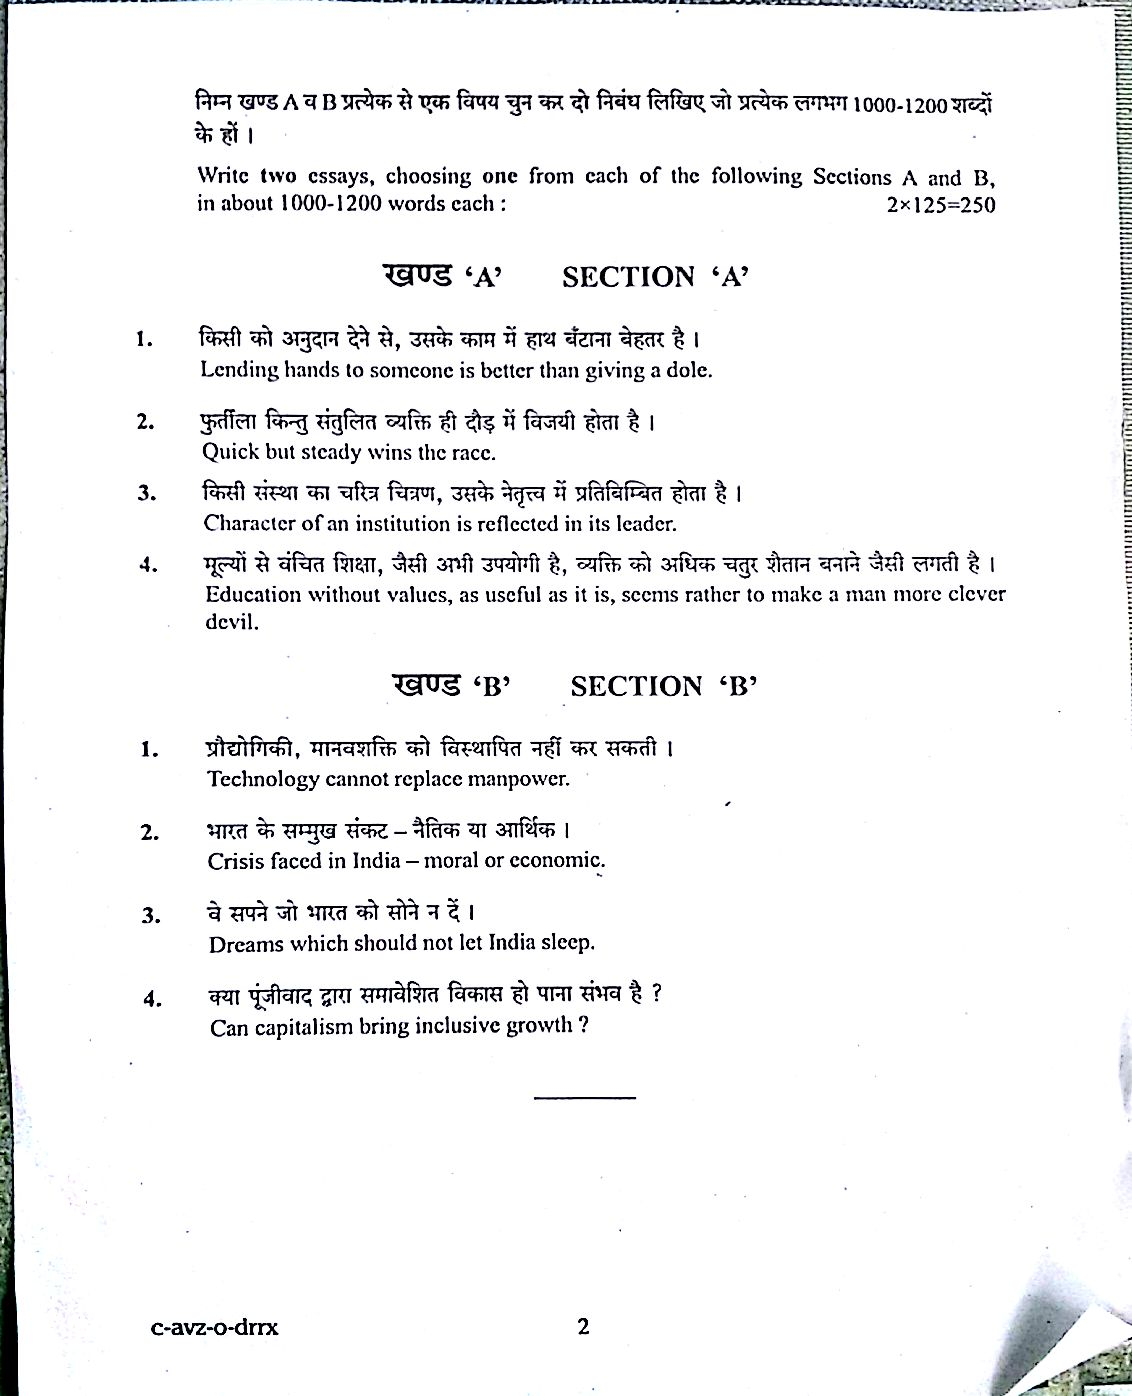 civil services mains 2012 essay paper Upsc – ias mains questions paper – civil service exam 2012 – general studies , public administration , sociology , philosophy , geography , psychology , hindi literature , essay.